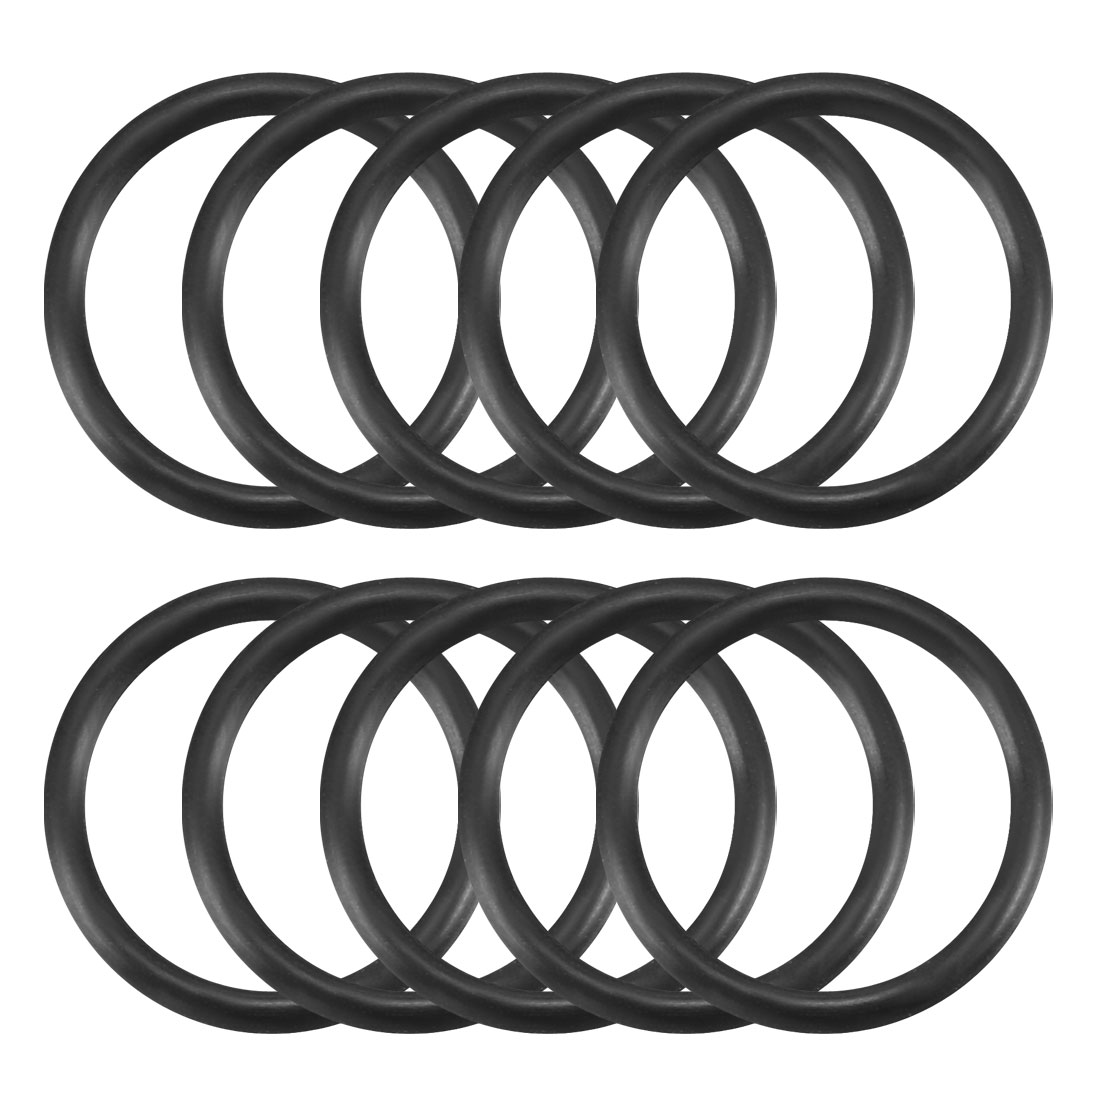 10 Pcs Black Rubber O Ring Oil Seal Gasket Washers 15mm x 12mm x 1.5mm